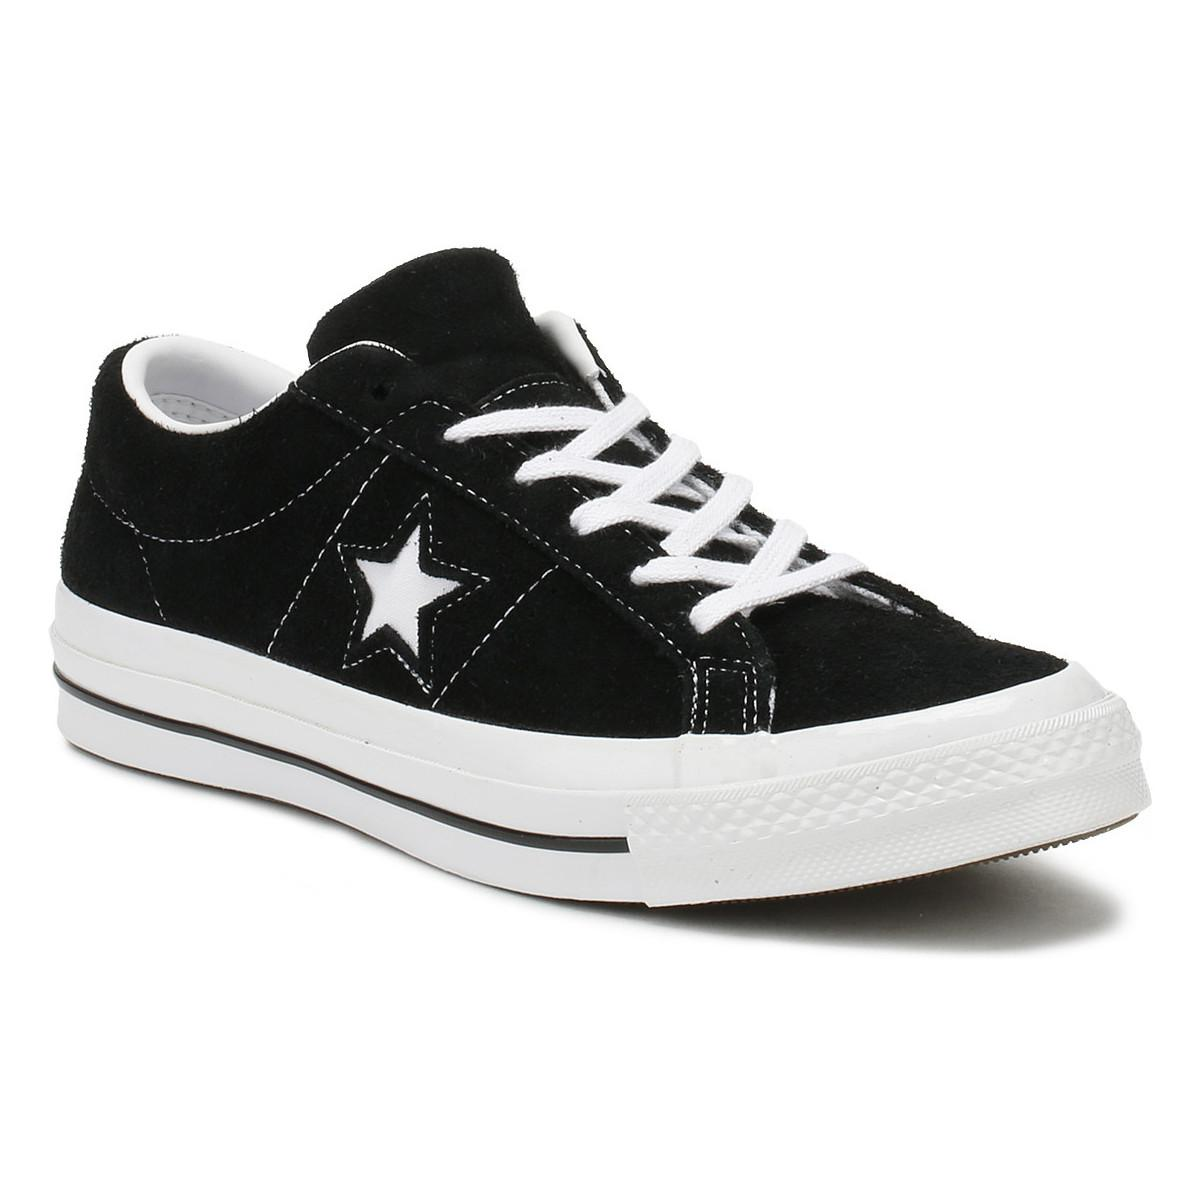 94b0e0b6bc7ad5 Converse. One Star Black Premium Suede Ox Trainers Women s Shoes ...